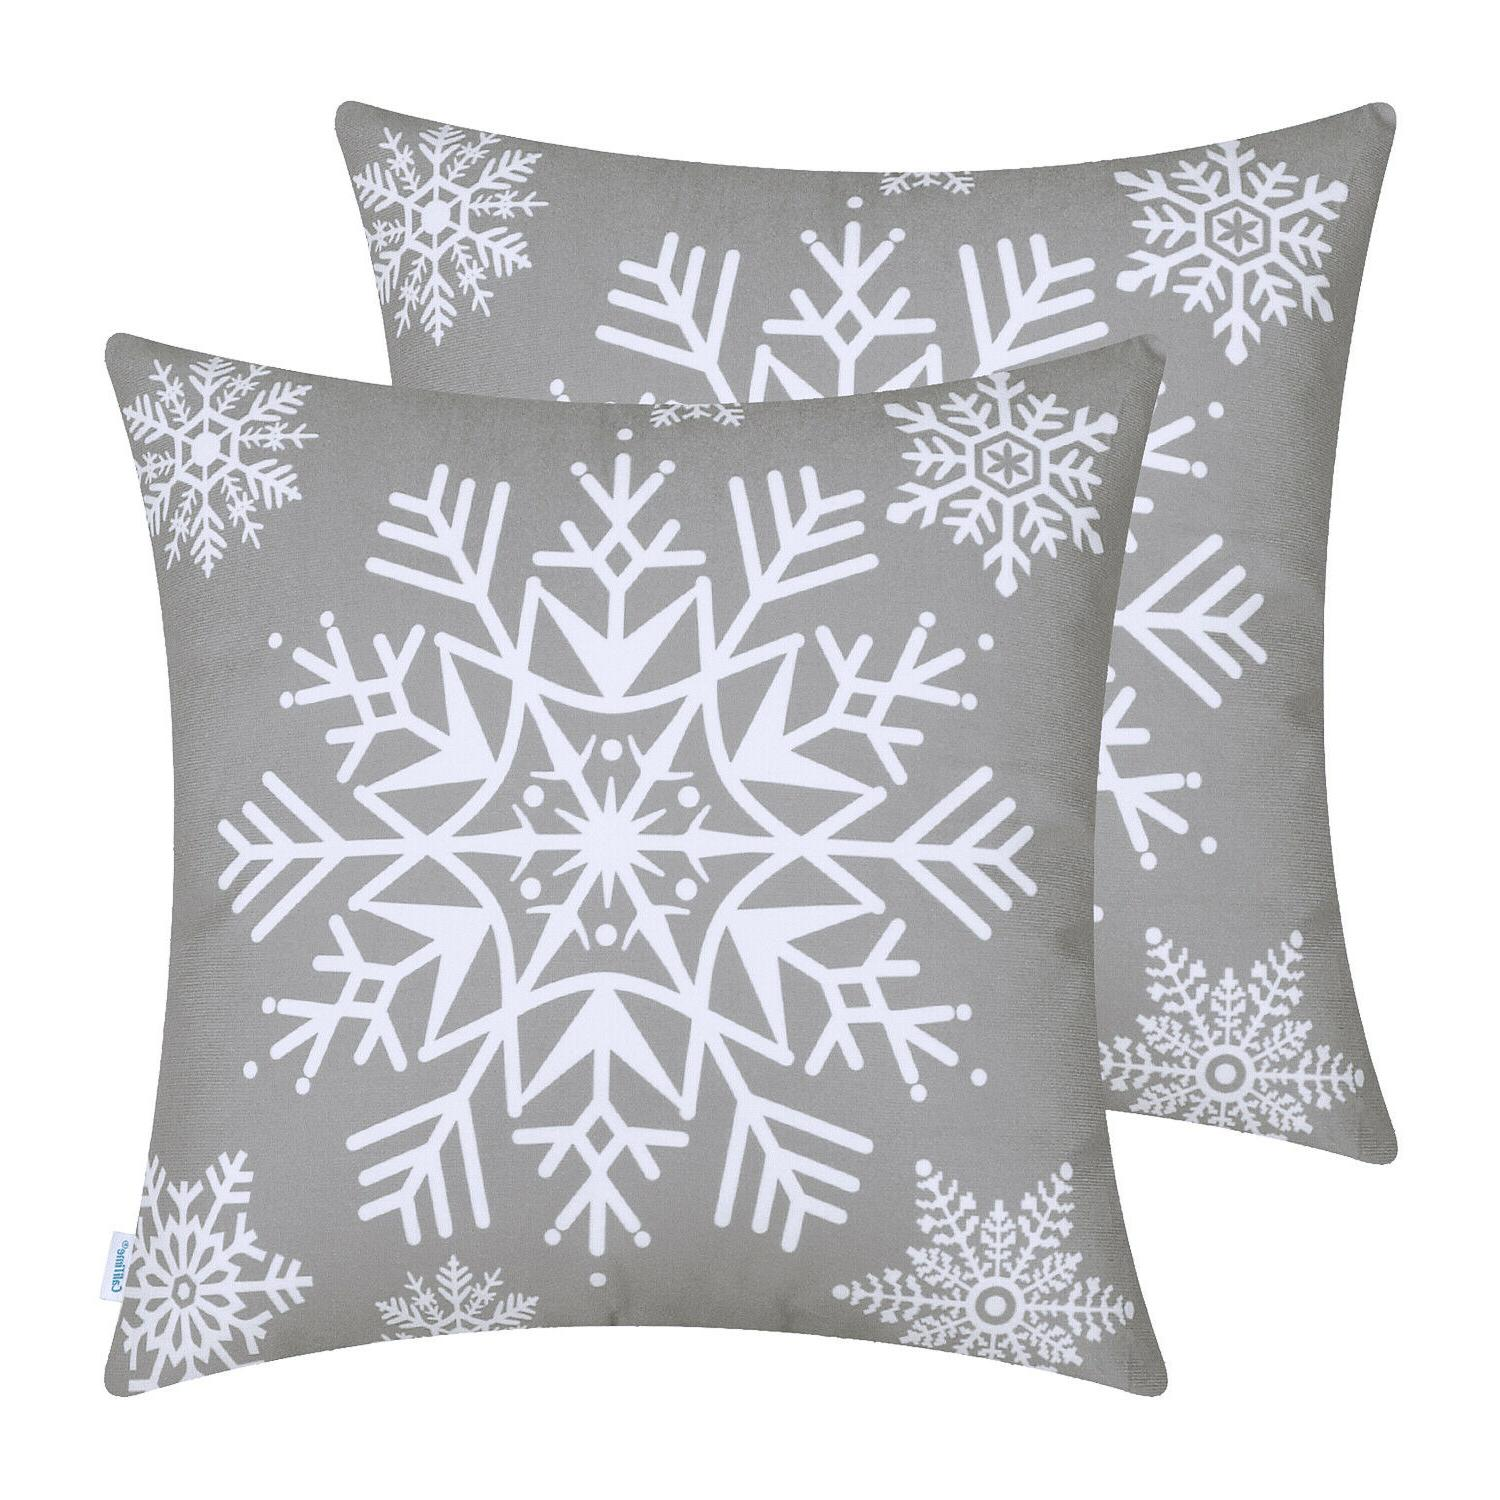 CaliTime Pillows Cases Covers Christmas Snowflakes Home